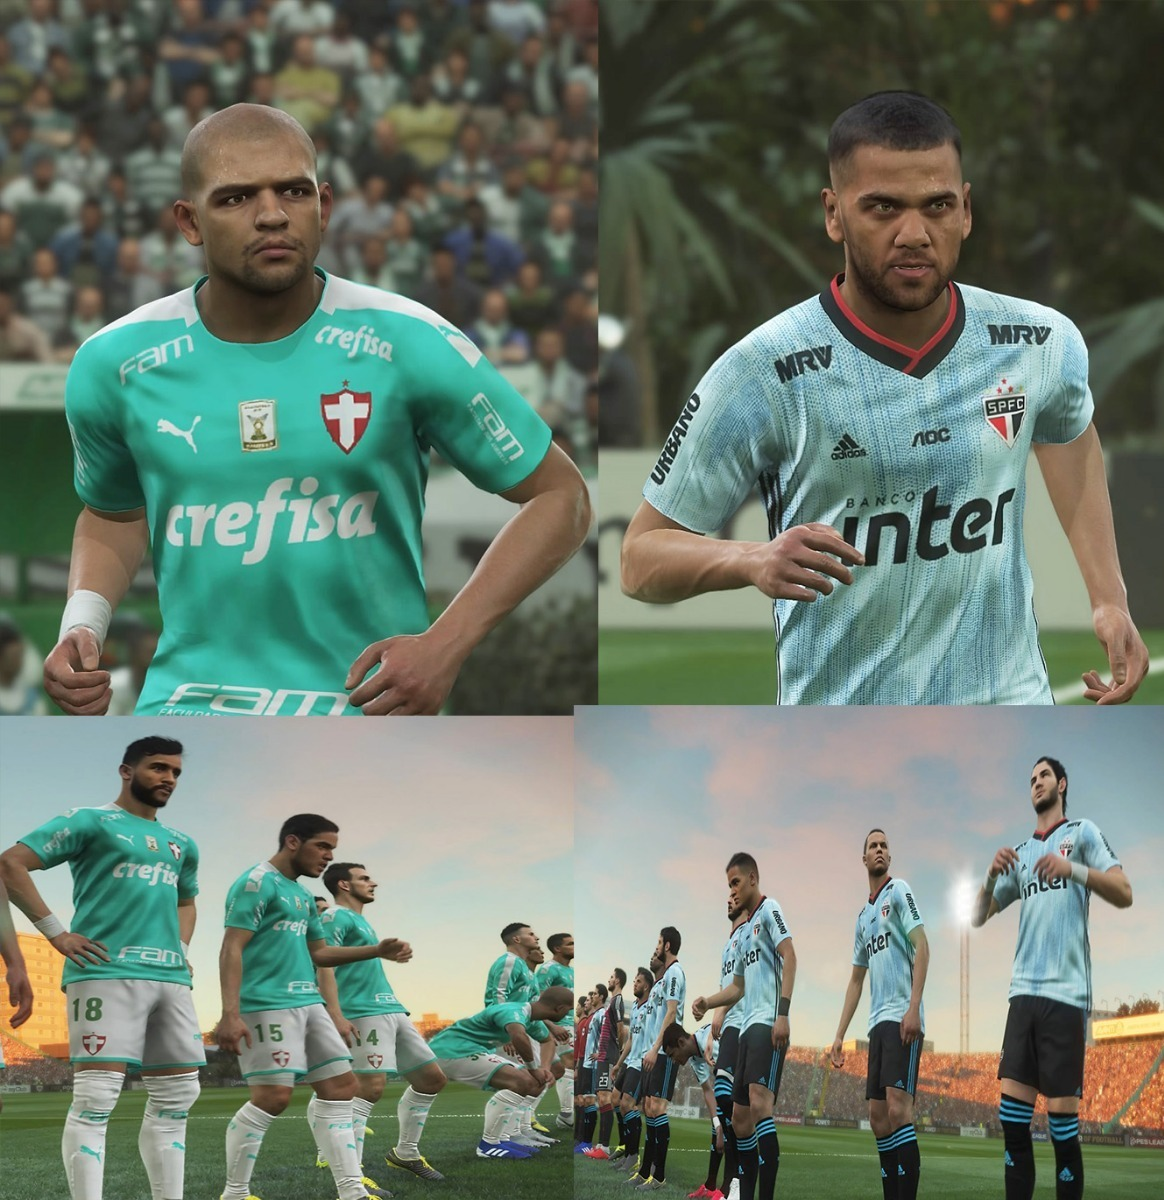 Patch Pes 2019 Ps4 V19 Atz Agosto Compatível Dlc 6 0 Show!